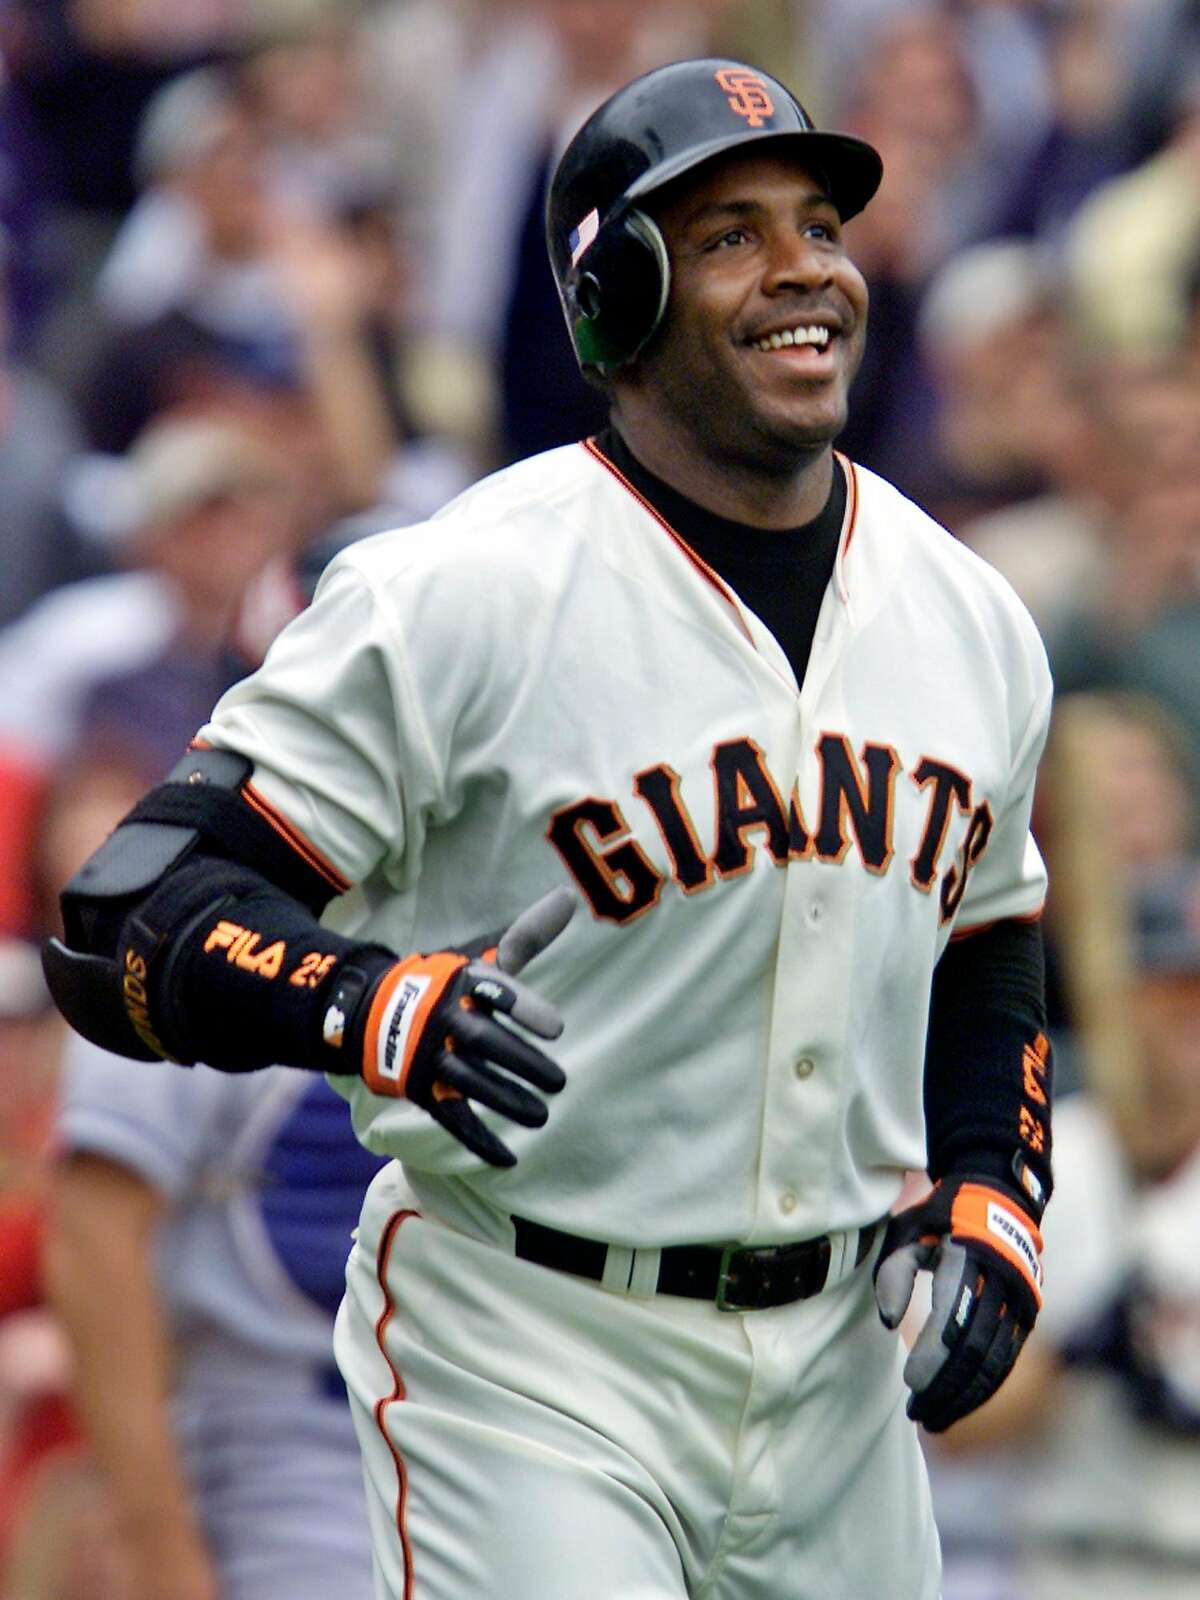 ** FILE ** In this Oct. 7, 2001, file photo, San Francisco Giants' Barry Bonds smiles as he begins to round the bases after he hit his 73rd home run of the season, against the Los Angeles Dodgers at Pacific Bell Park in San Francisco. Federal prosecutors say they will prove personal trainer Greg Anderson supplied Bonds with the steroids that led to positive test in November 2000, the offseason before the slugger hit a major league record 73 home runs. (AP Photo/Eric Risberg, File)